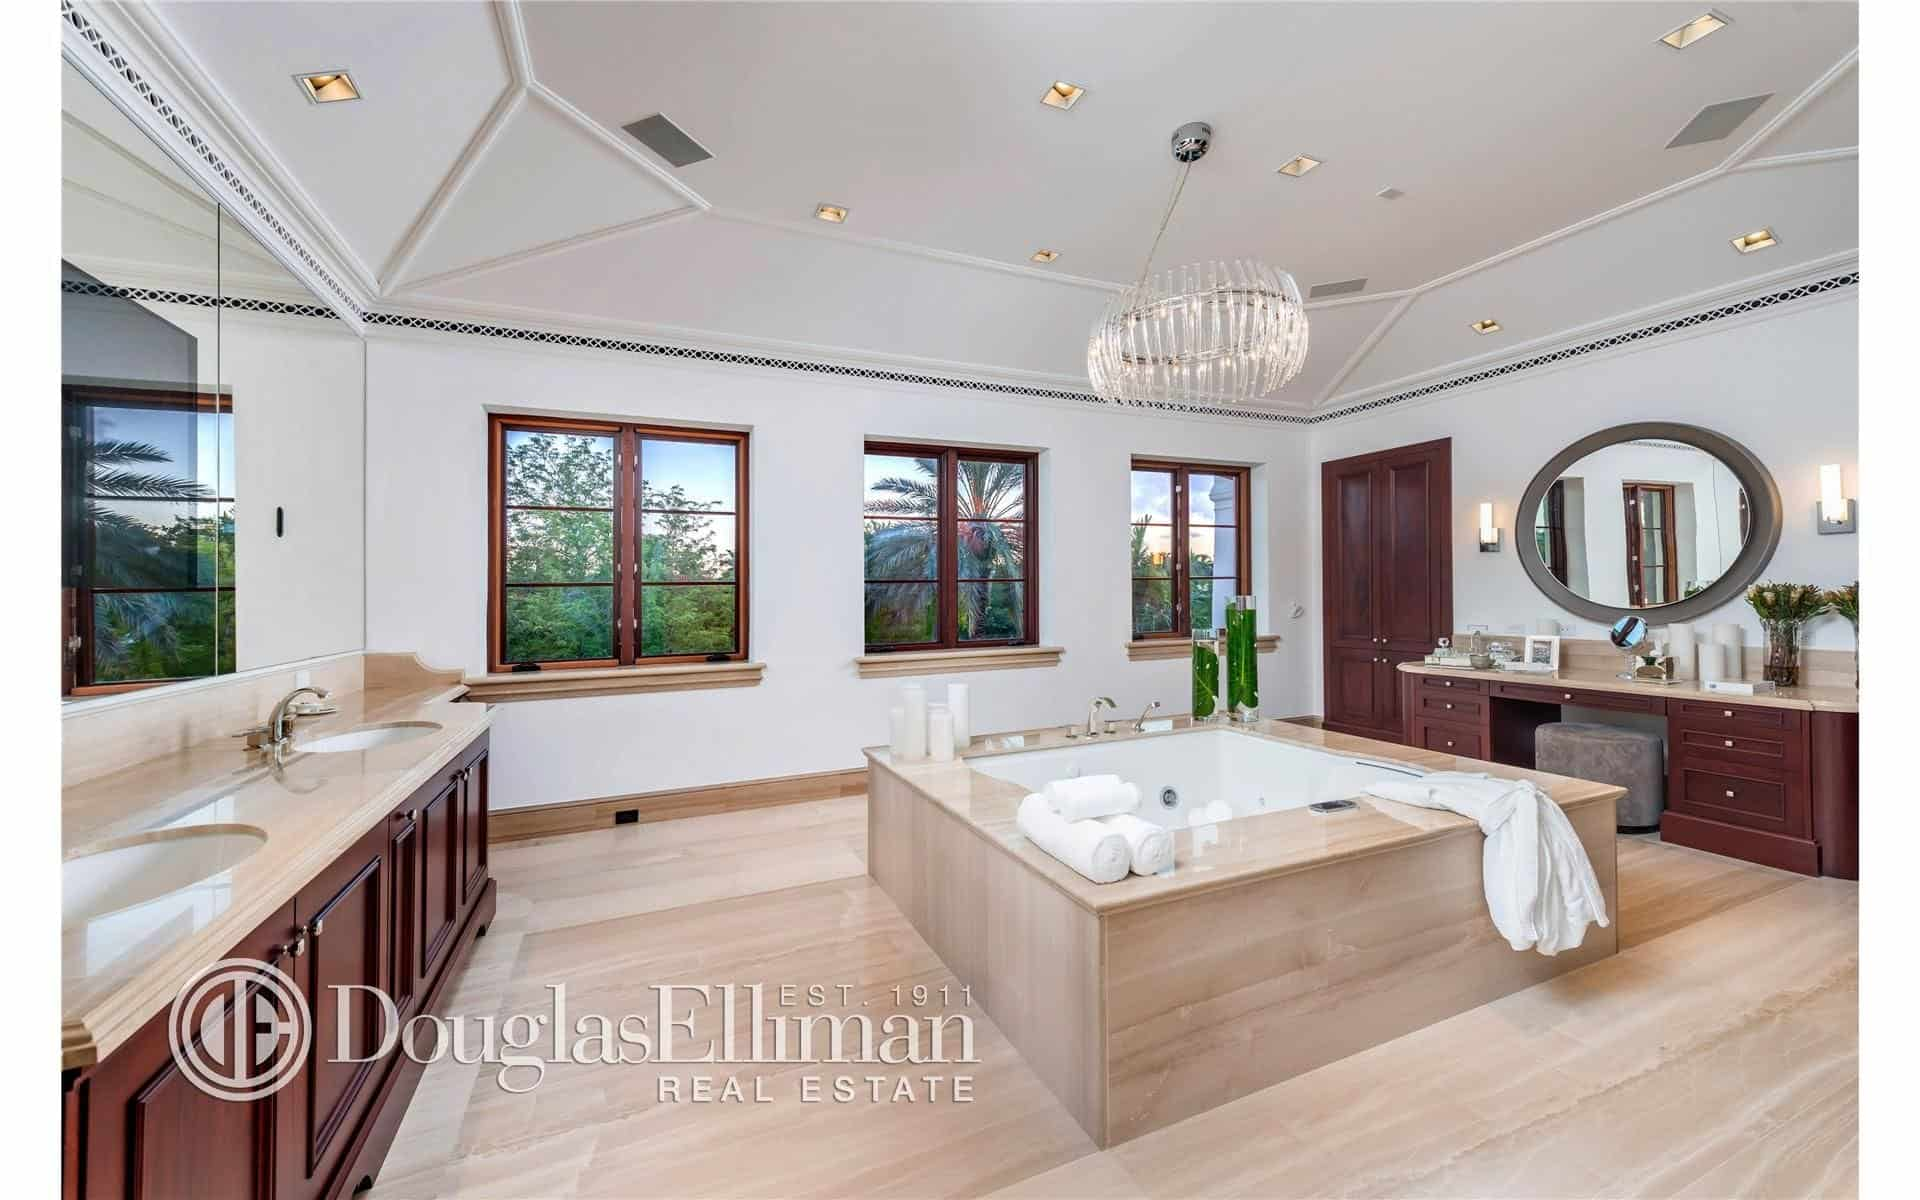 Cozy primary bathroom with a light wood bathtub in the middle matching with the flooring. There are wooden vanities on the sides paired with frameless and round mirror.